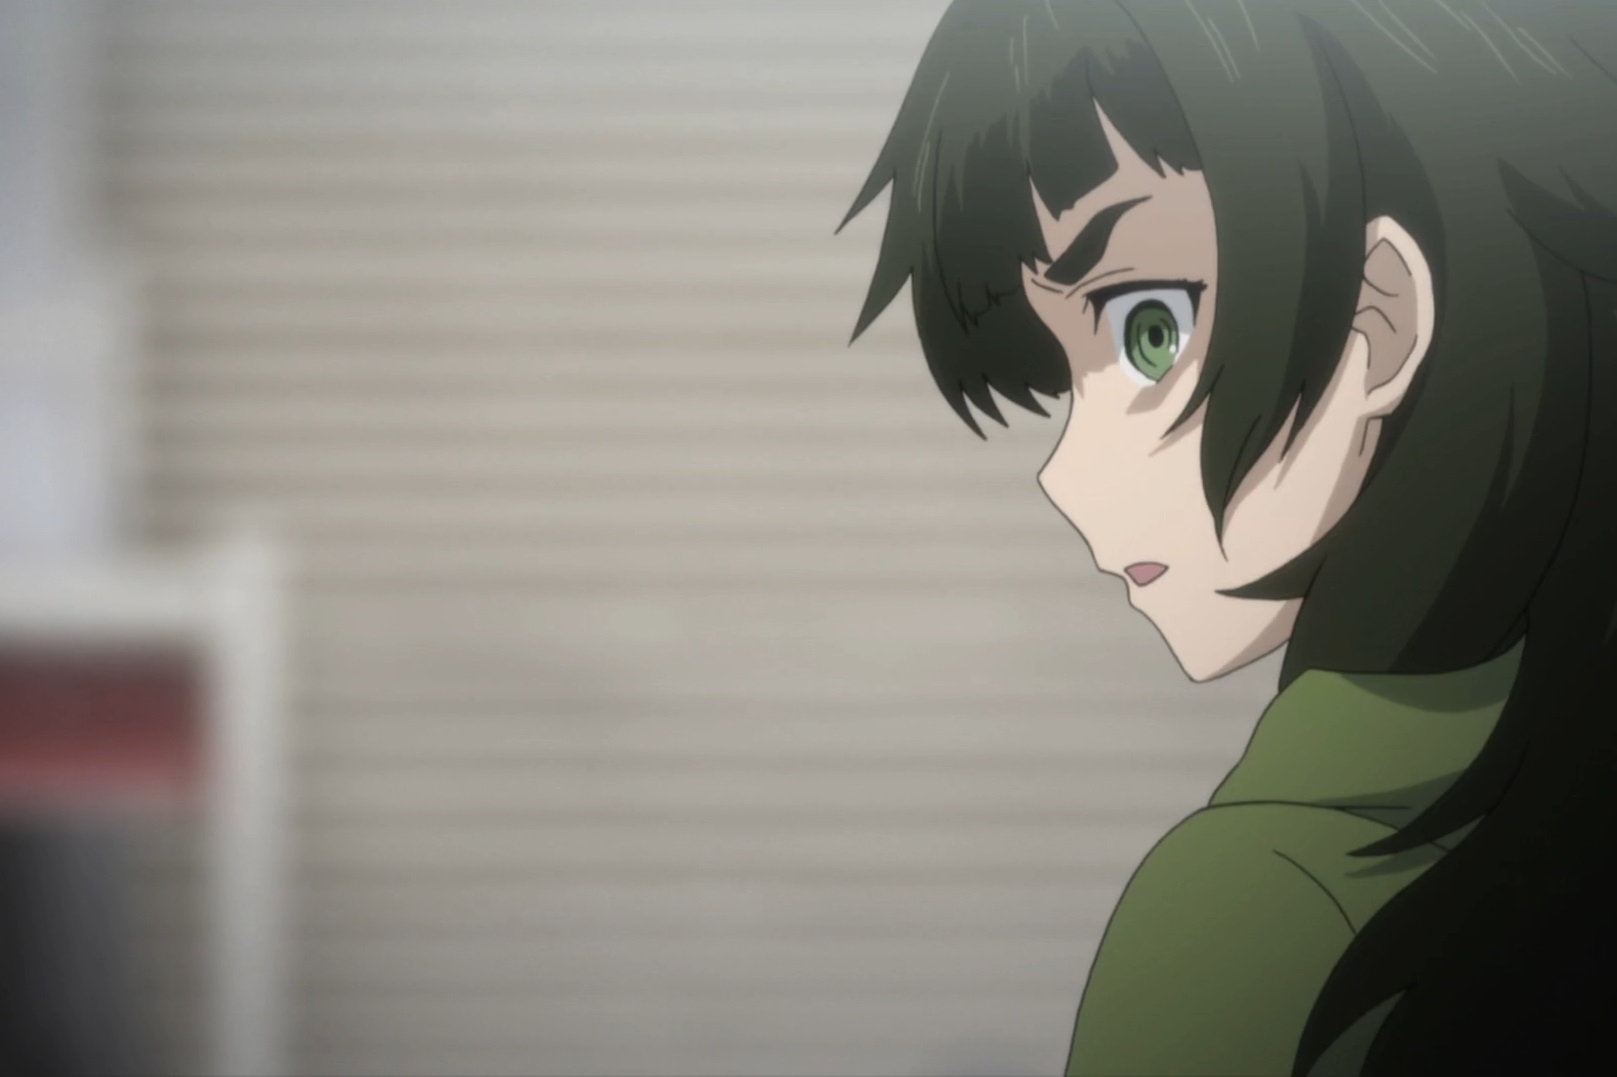 steins;gate 0 episode 5 maho